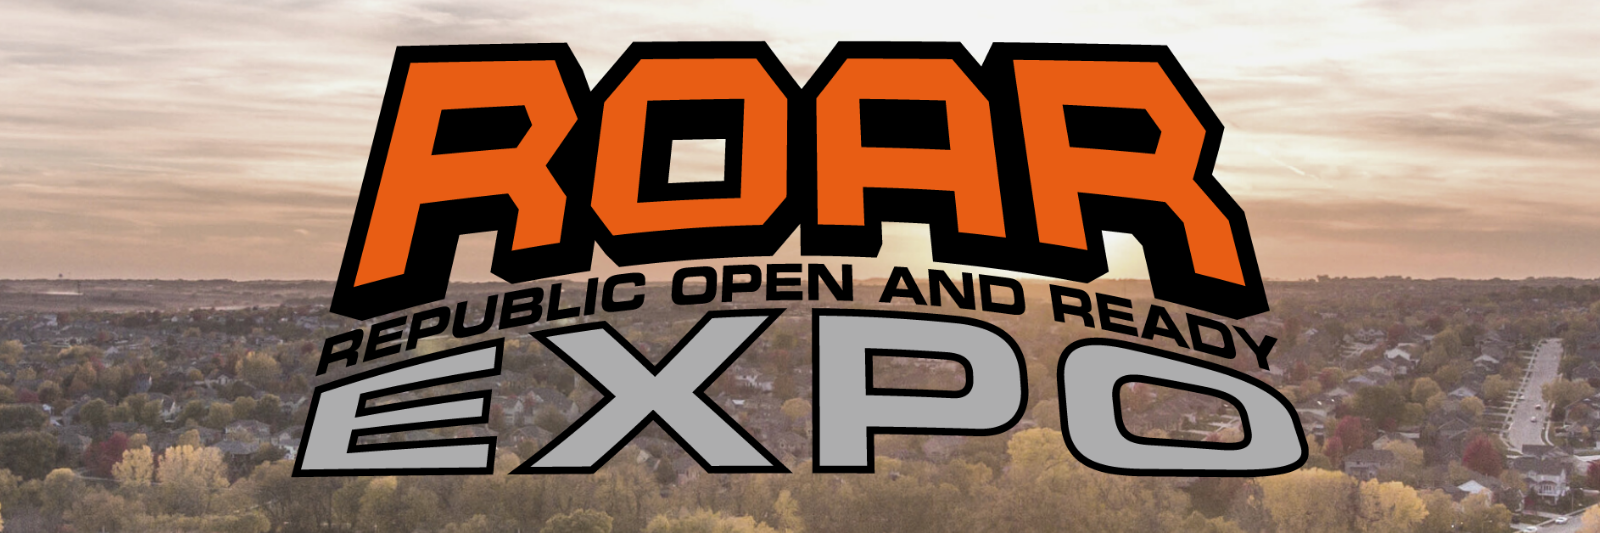 Chamber-Expo-Banner-1.png